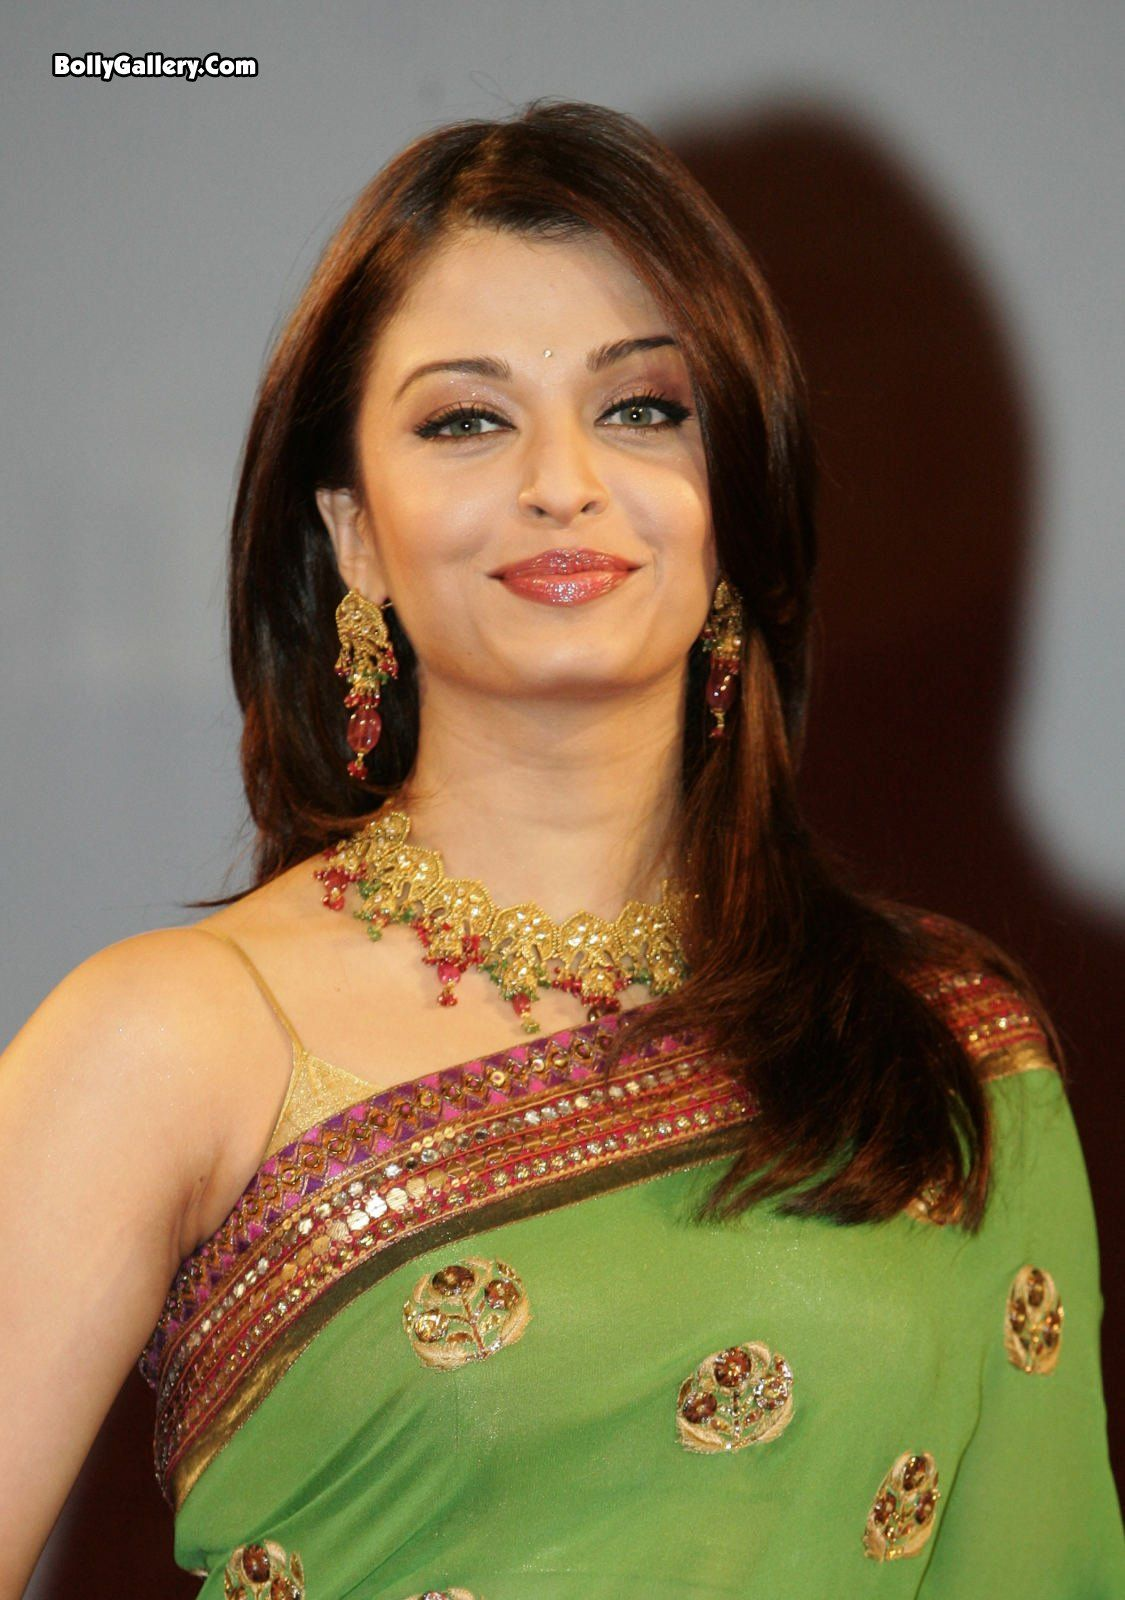 Aishwarya Rai Hair care advice, Aishwarya rai, Hair looks